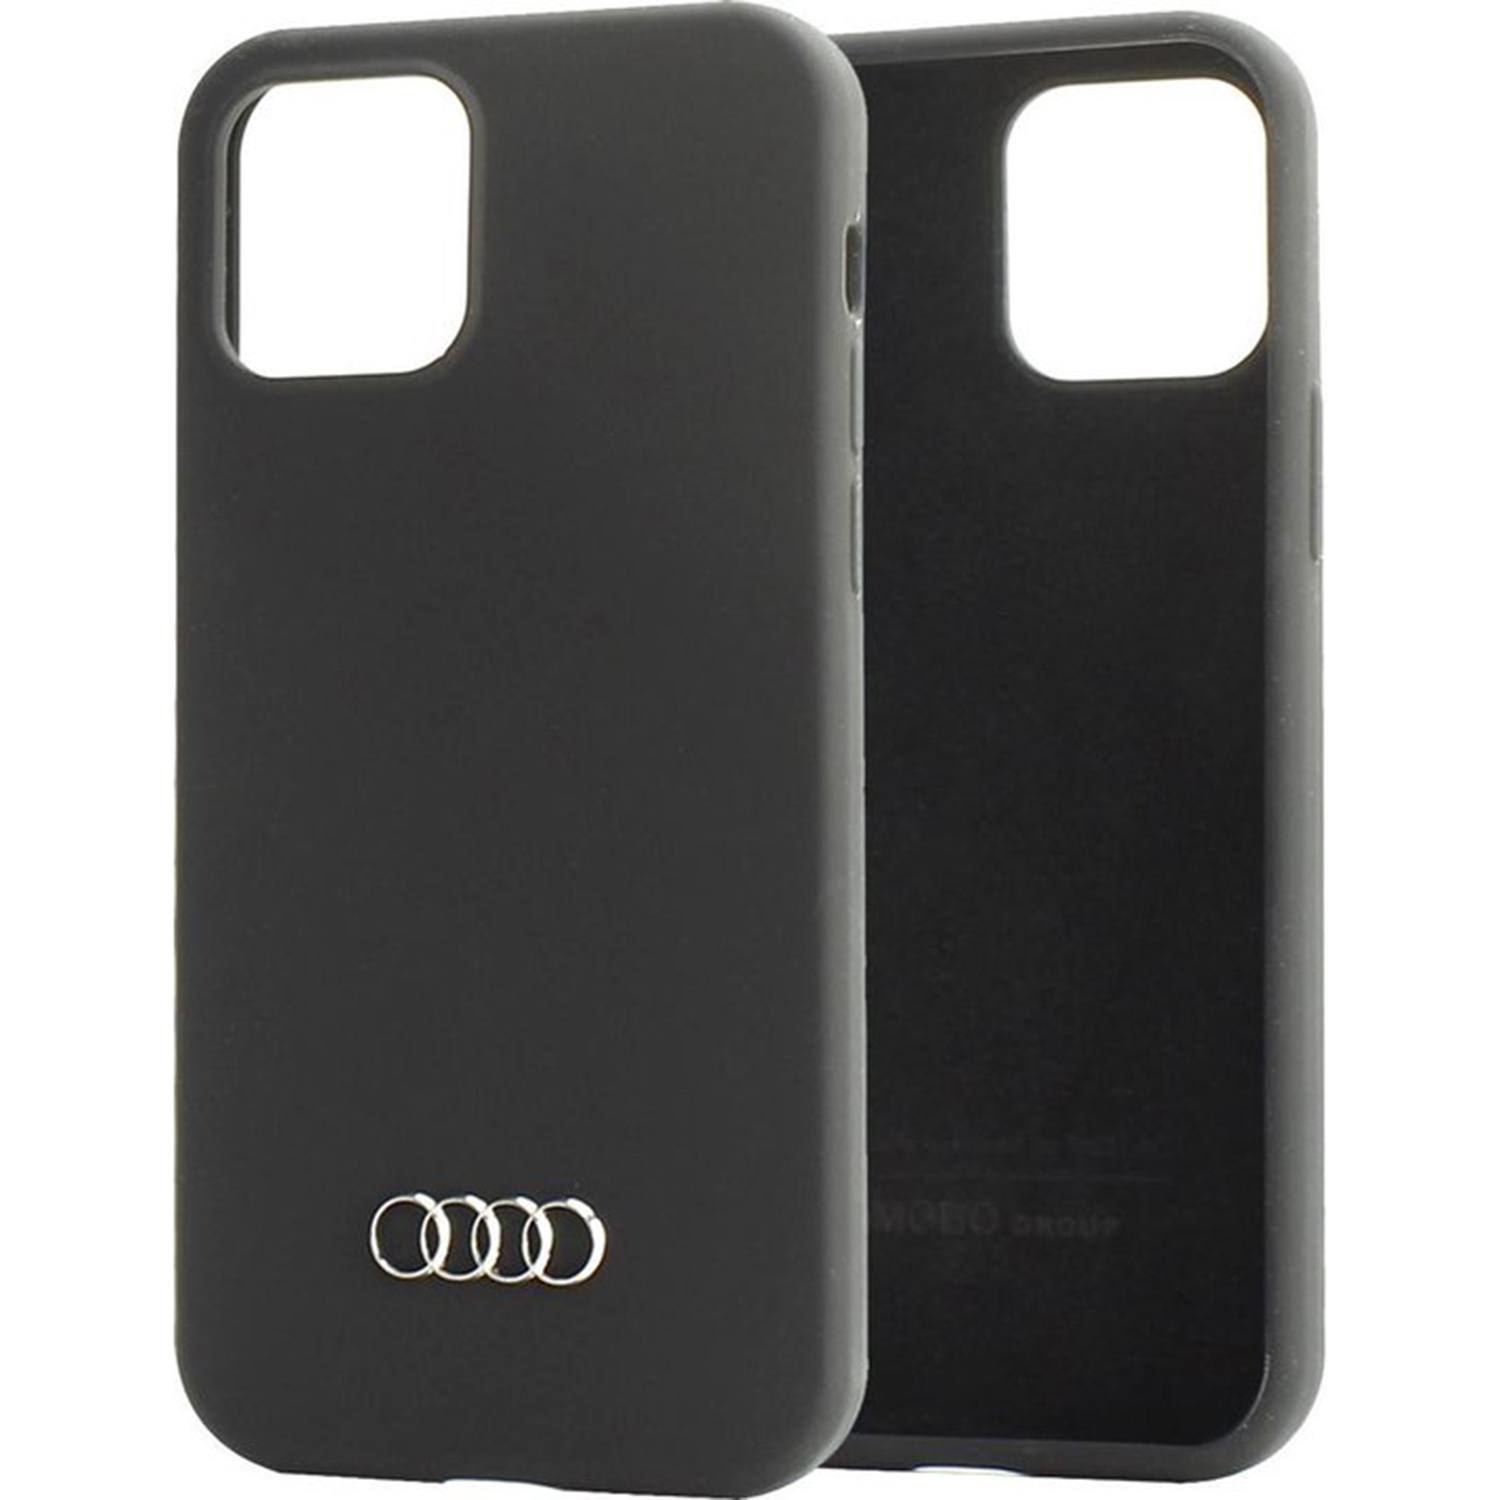 Q3 Silicone Backcover iPhone 12 (Pro) - Zwart